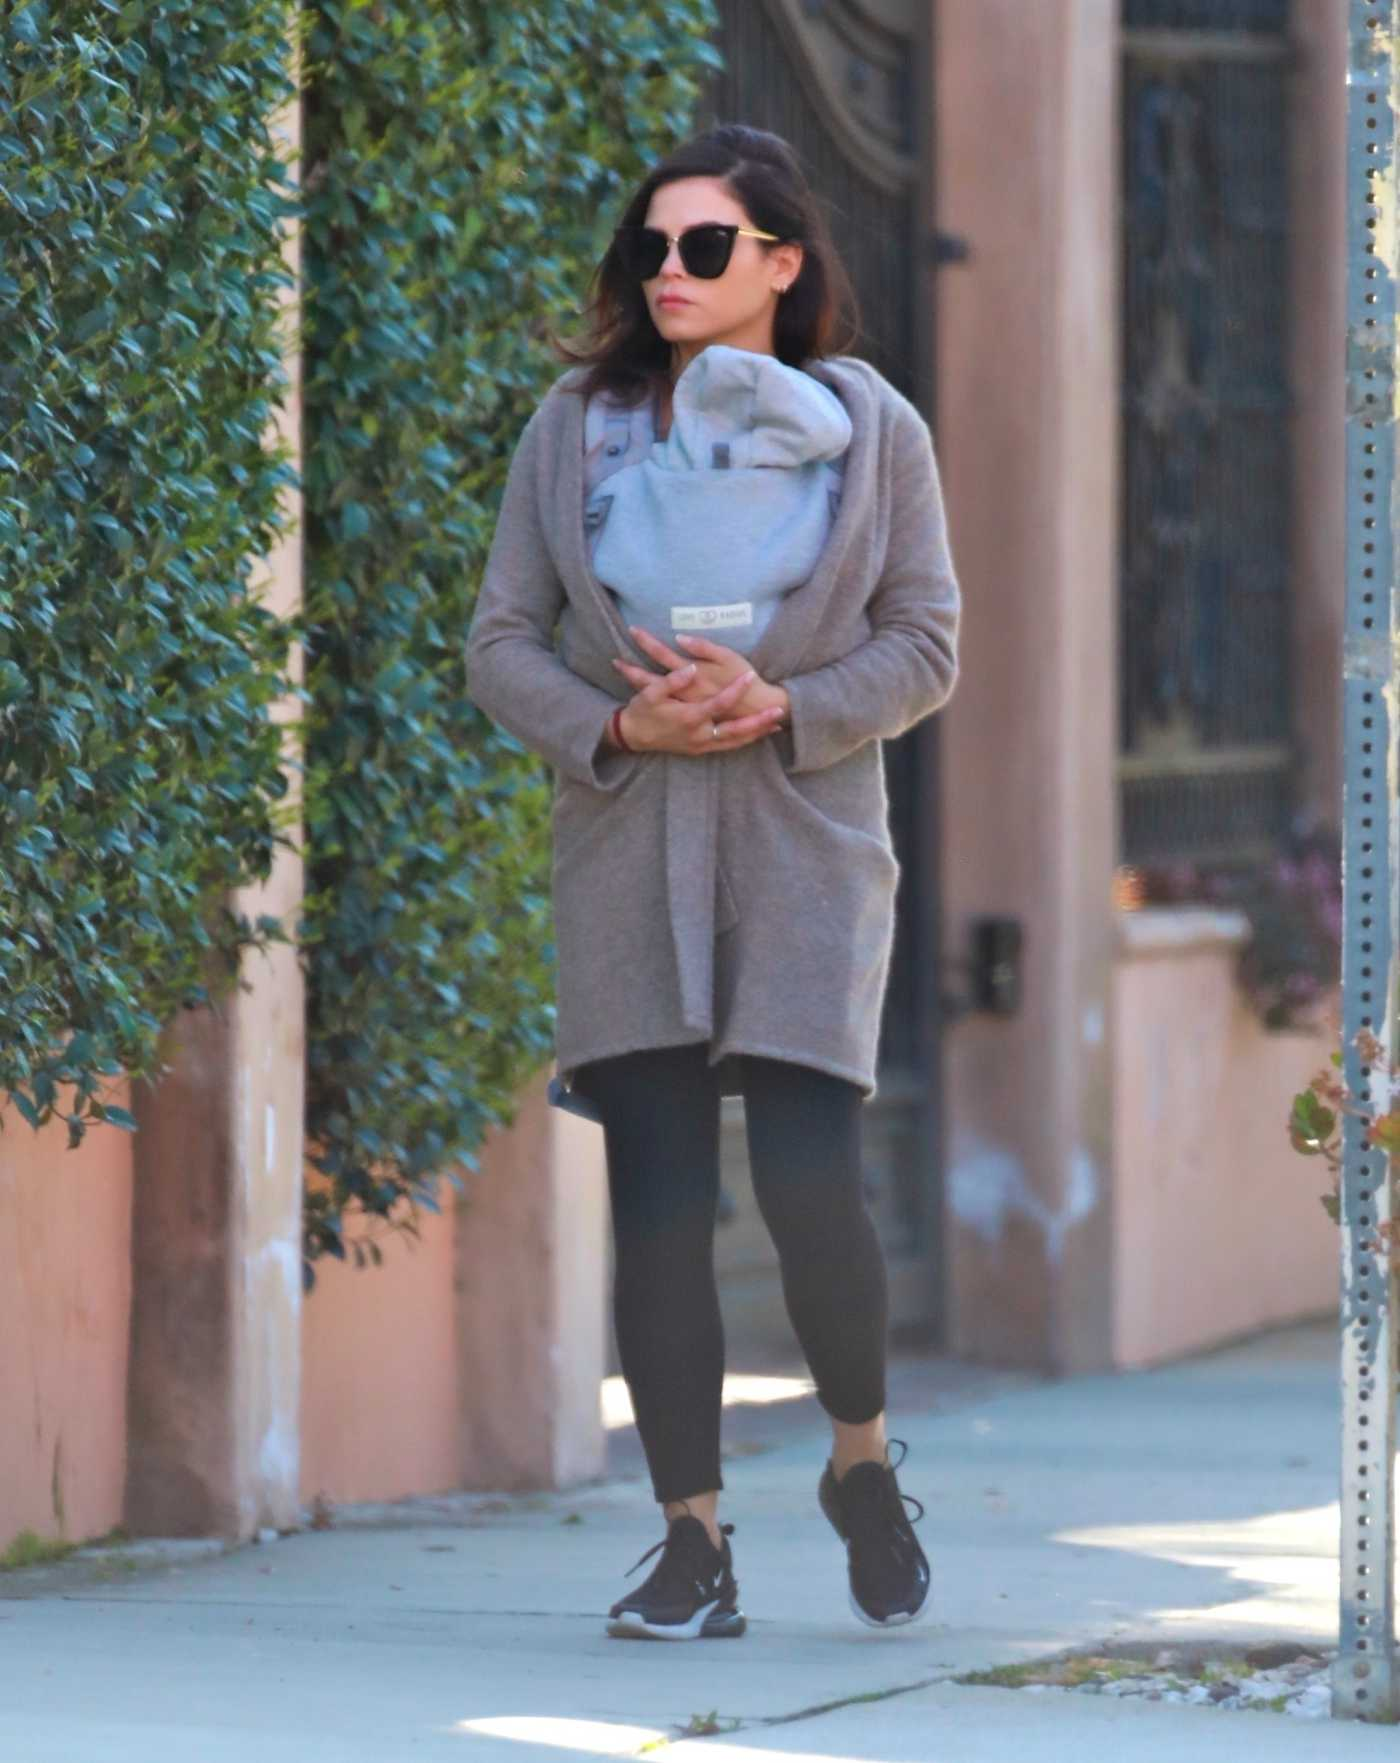 Jenna Dewan in a Black Leggings Was Seen Out with Her Baby Michael in Los Angeles 03/30/2020